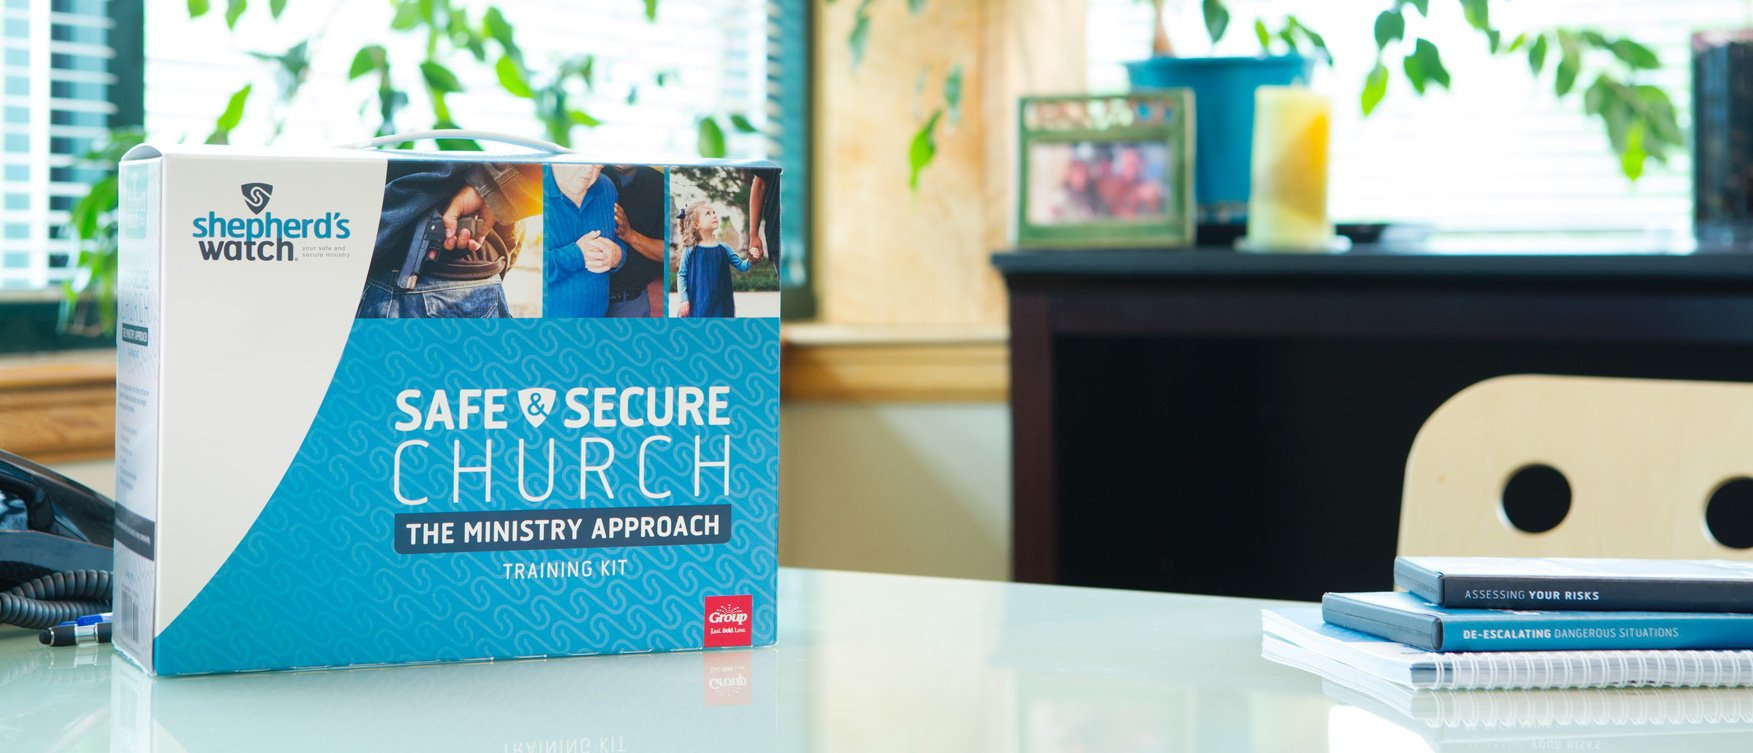 Church Background Checks for Staff and Volunteers - Group